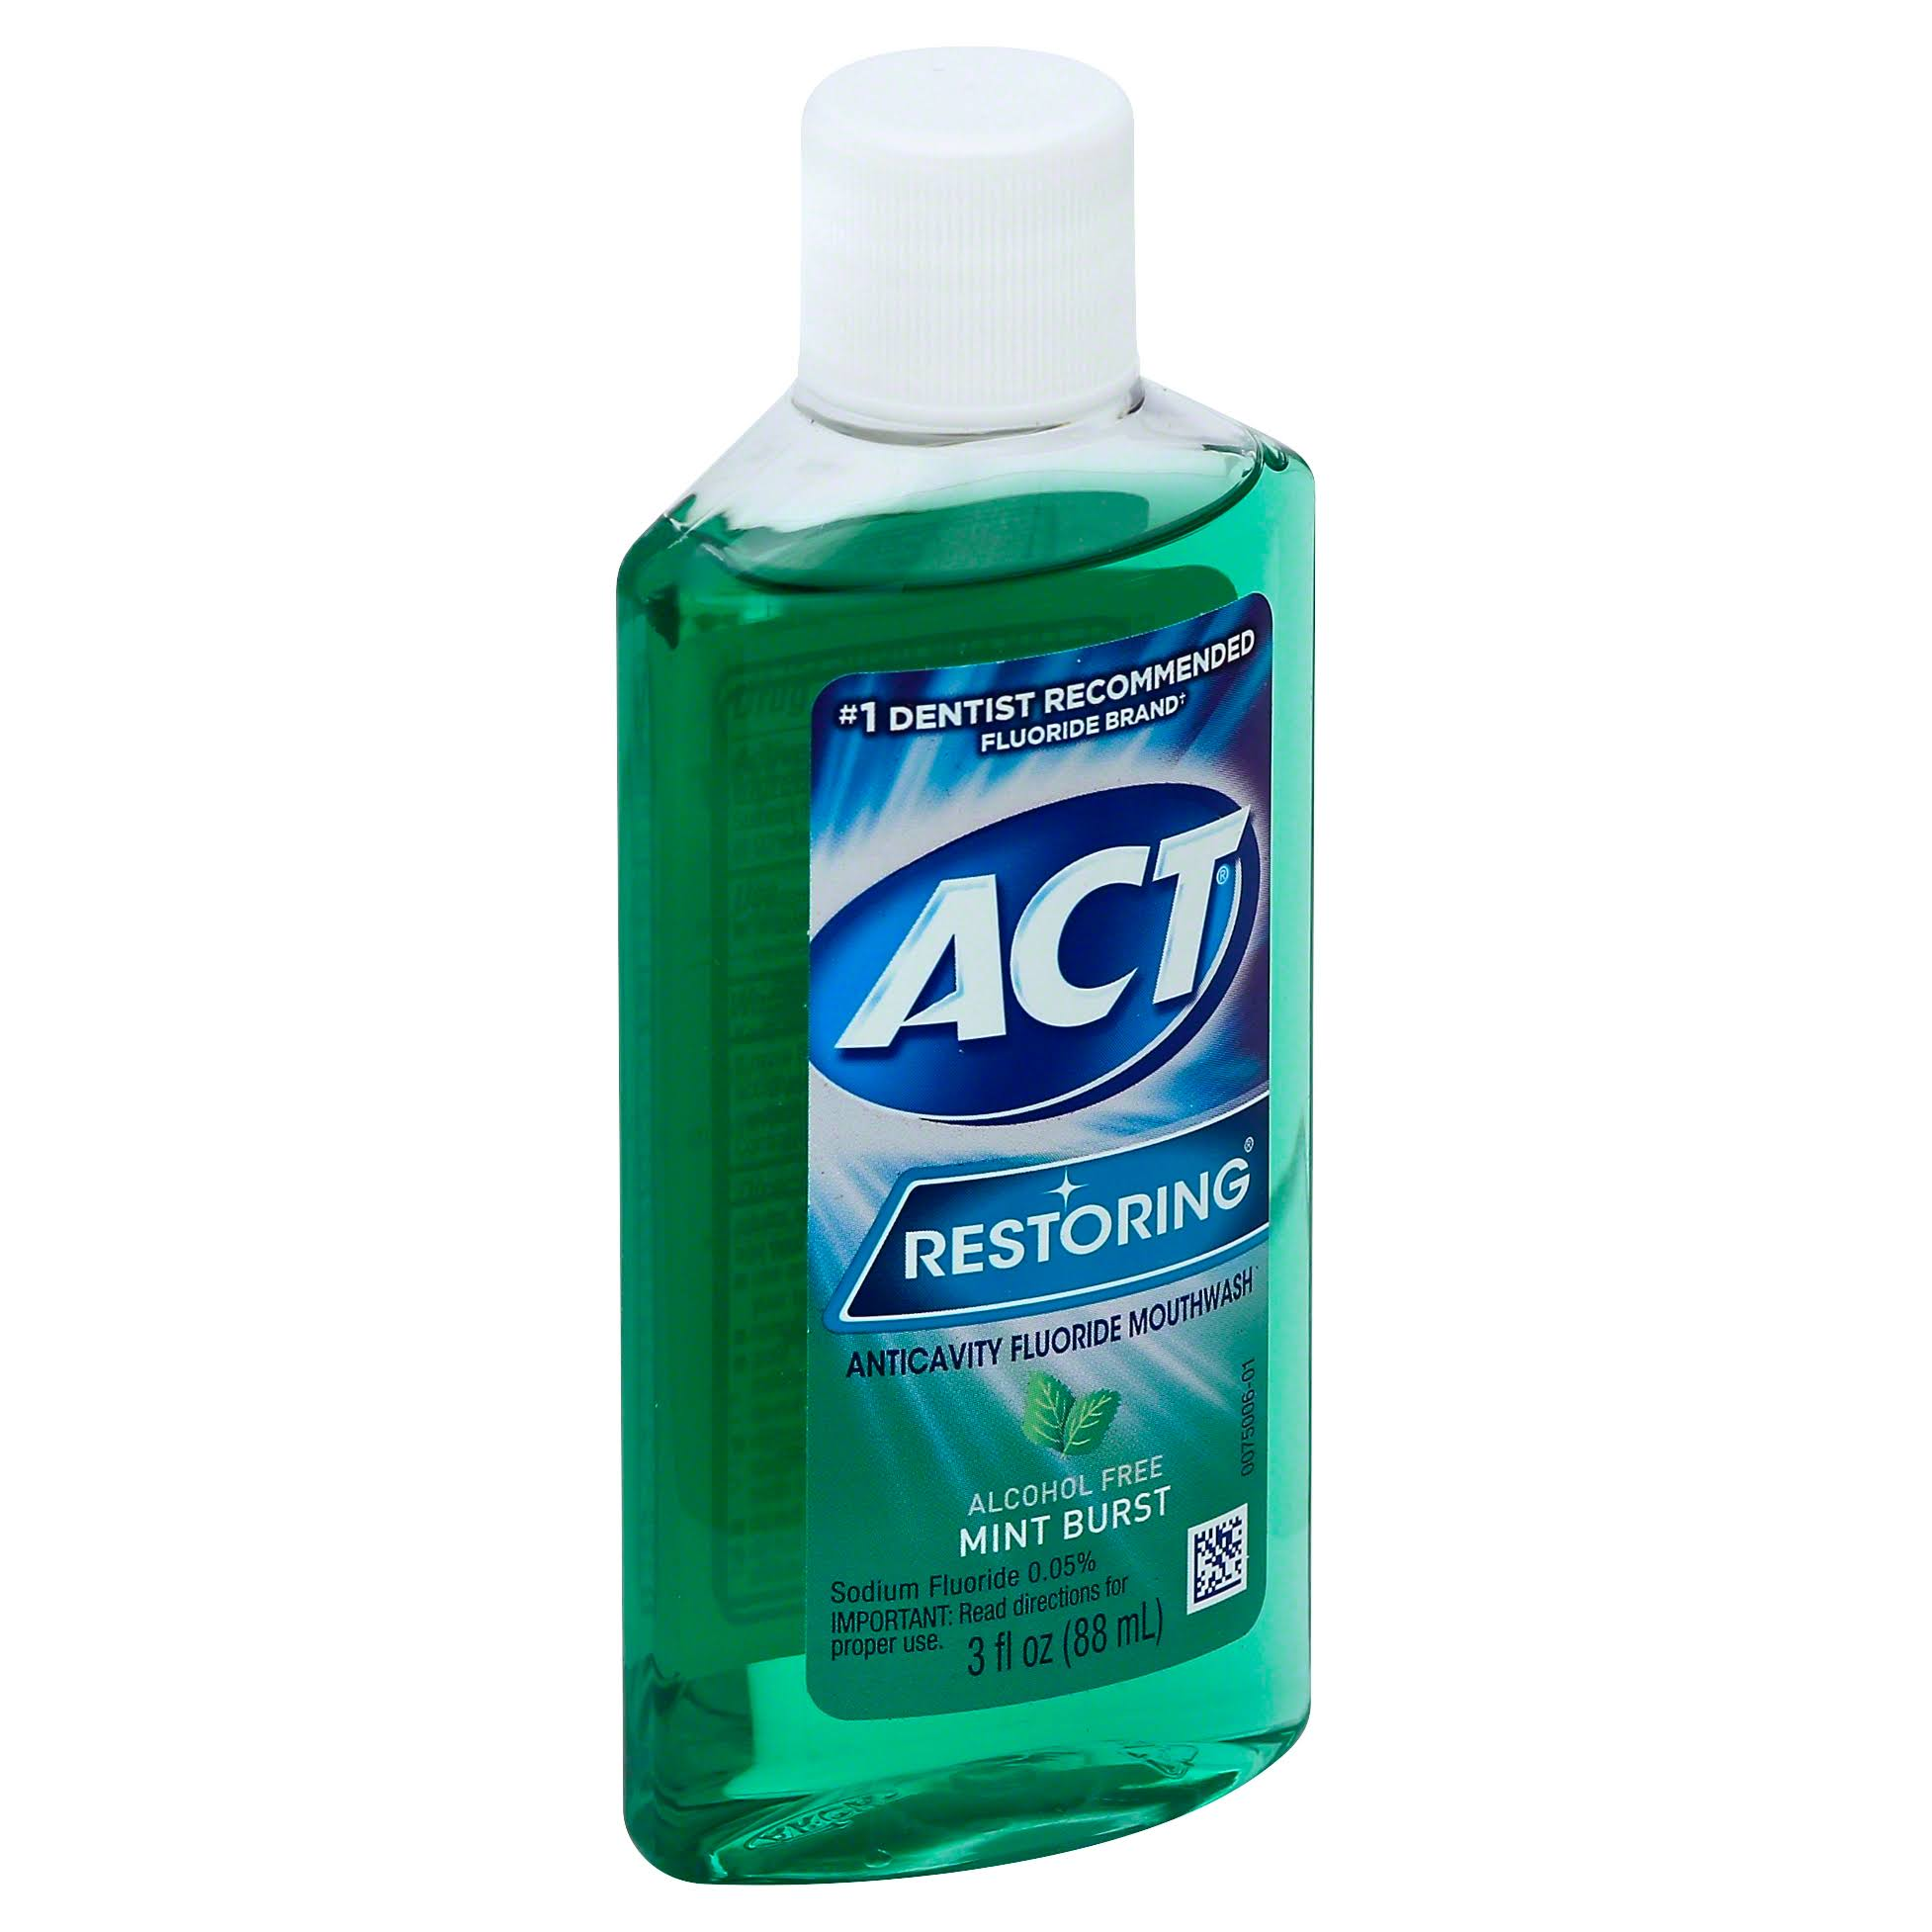 ACT Restoring Anticavity Fluoride Mouthwash - Mint Burst, 3oz